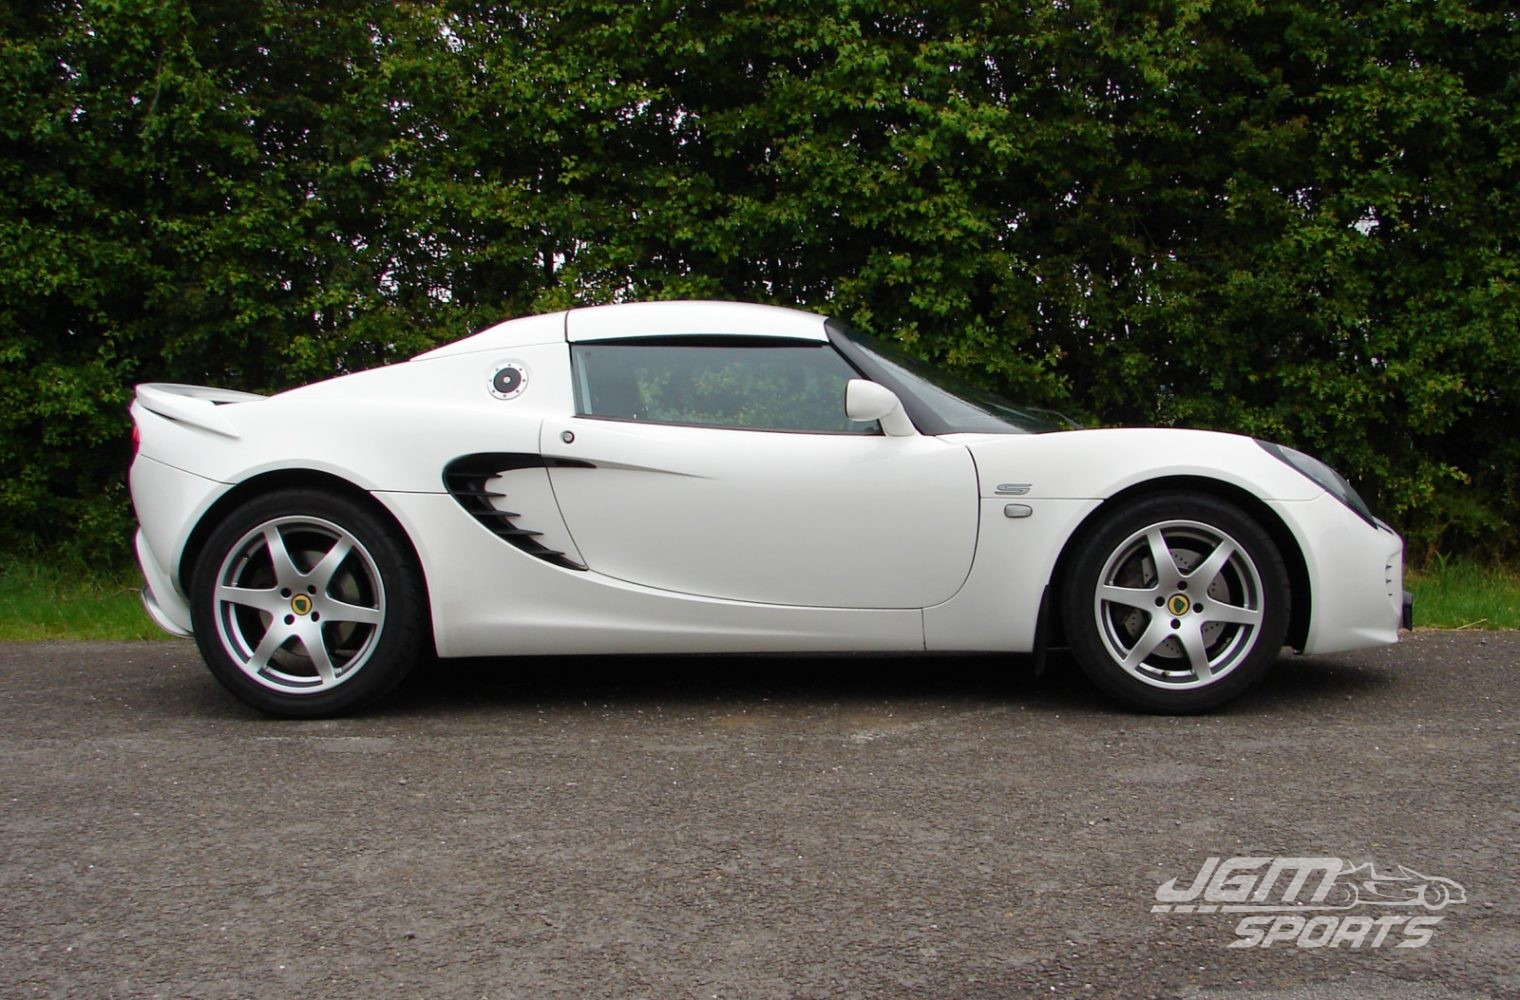 http://www.jgmsports.co.uk/wp-content/uploads/2009-S2-LOTUS-ELISE-S-FACTORY-ORDERED-ASPEN-WHITE-AIRBAG-DASH-LOVELY-CONDITION-1520x1000.jpg